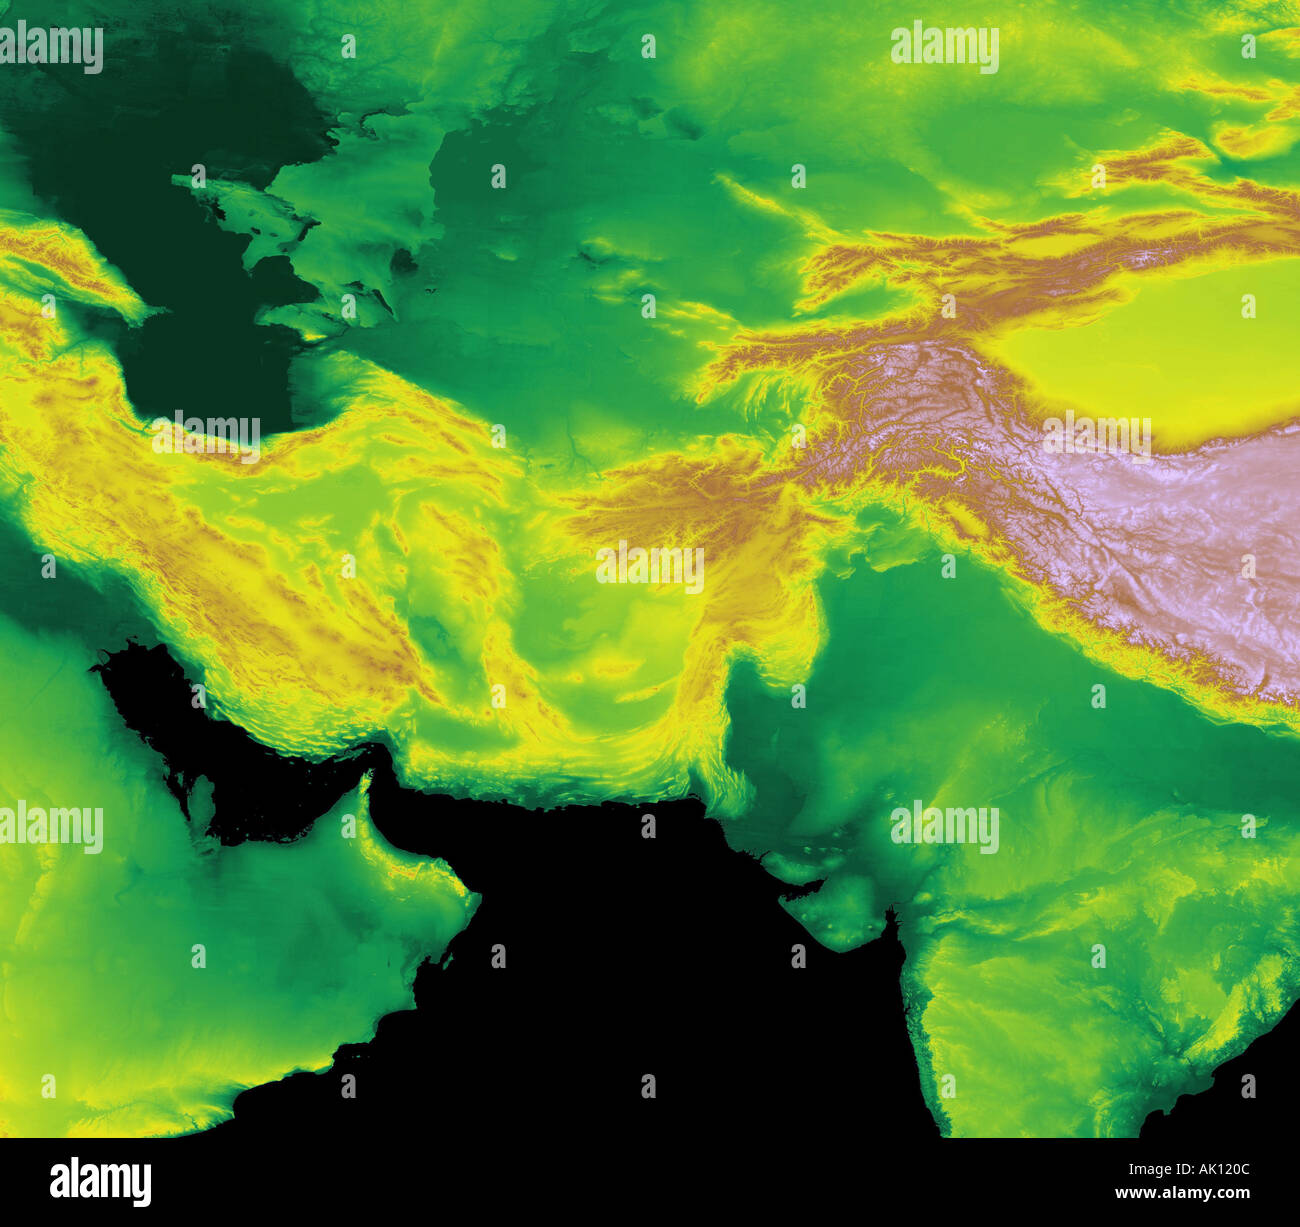 Digital Elevation Map Of Arabian Gulf And Central Asia Earth From